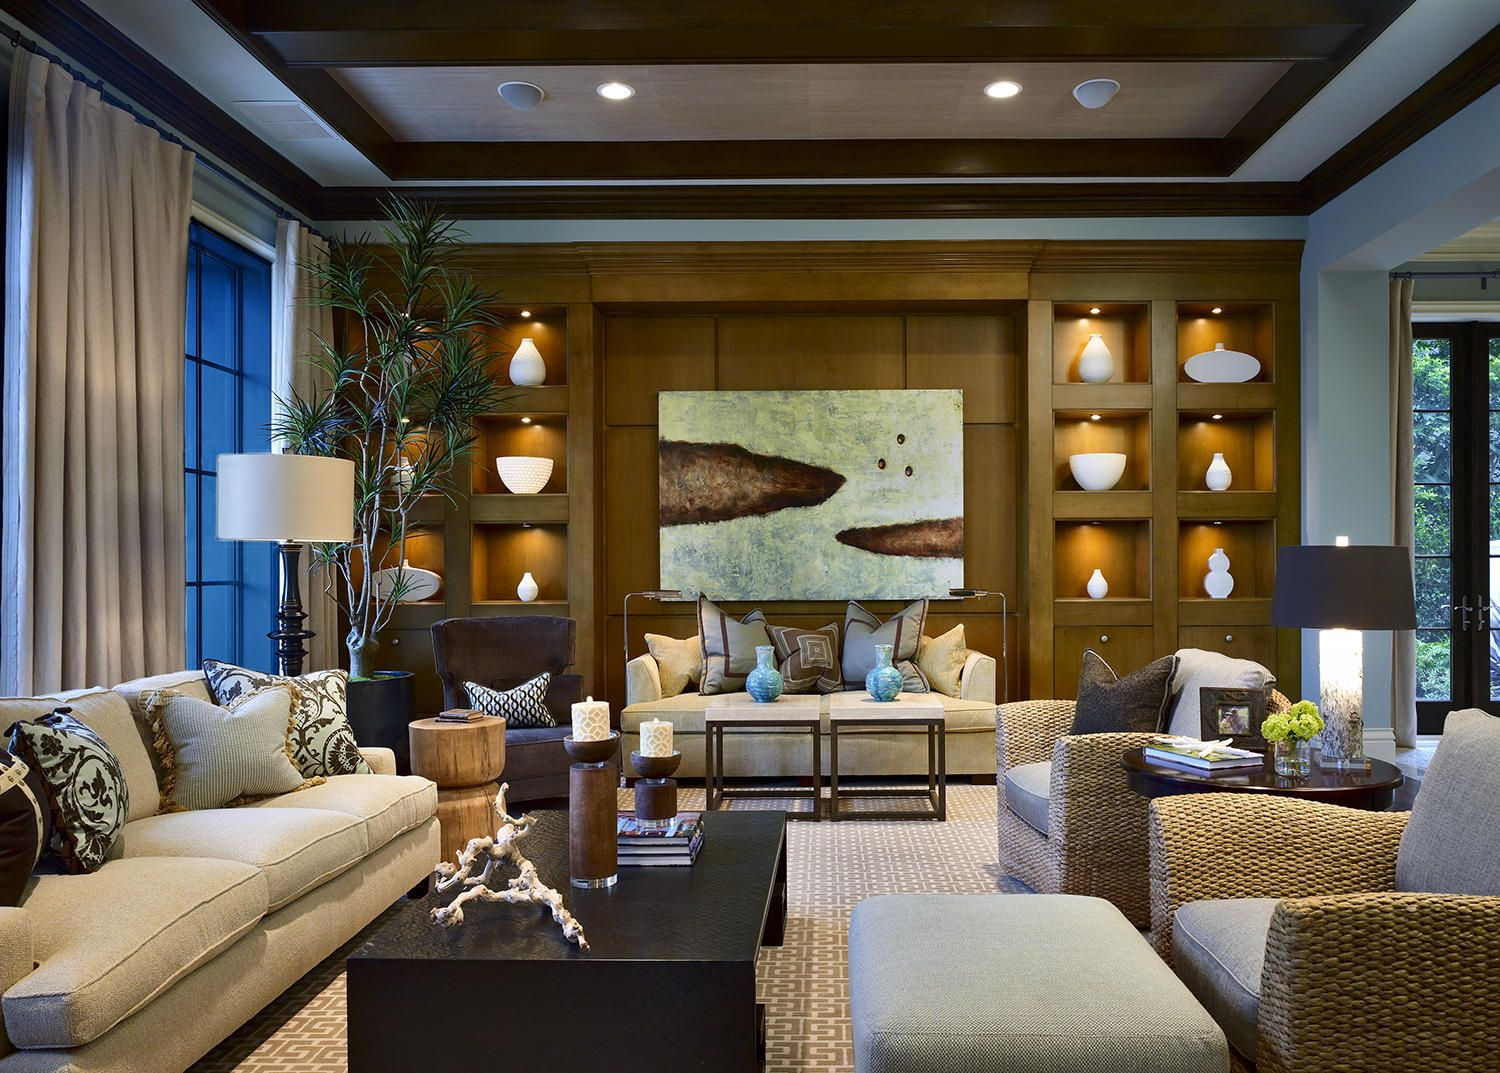 Interior Design Boca Raton Marc-michaels Interior Design, Inc. - Private Residence 5